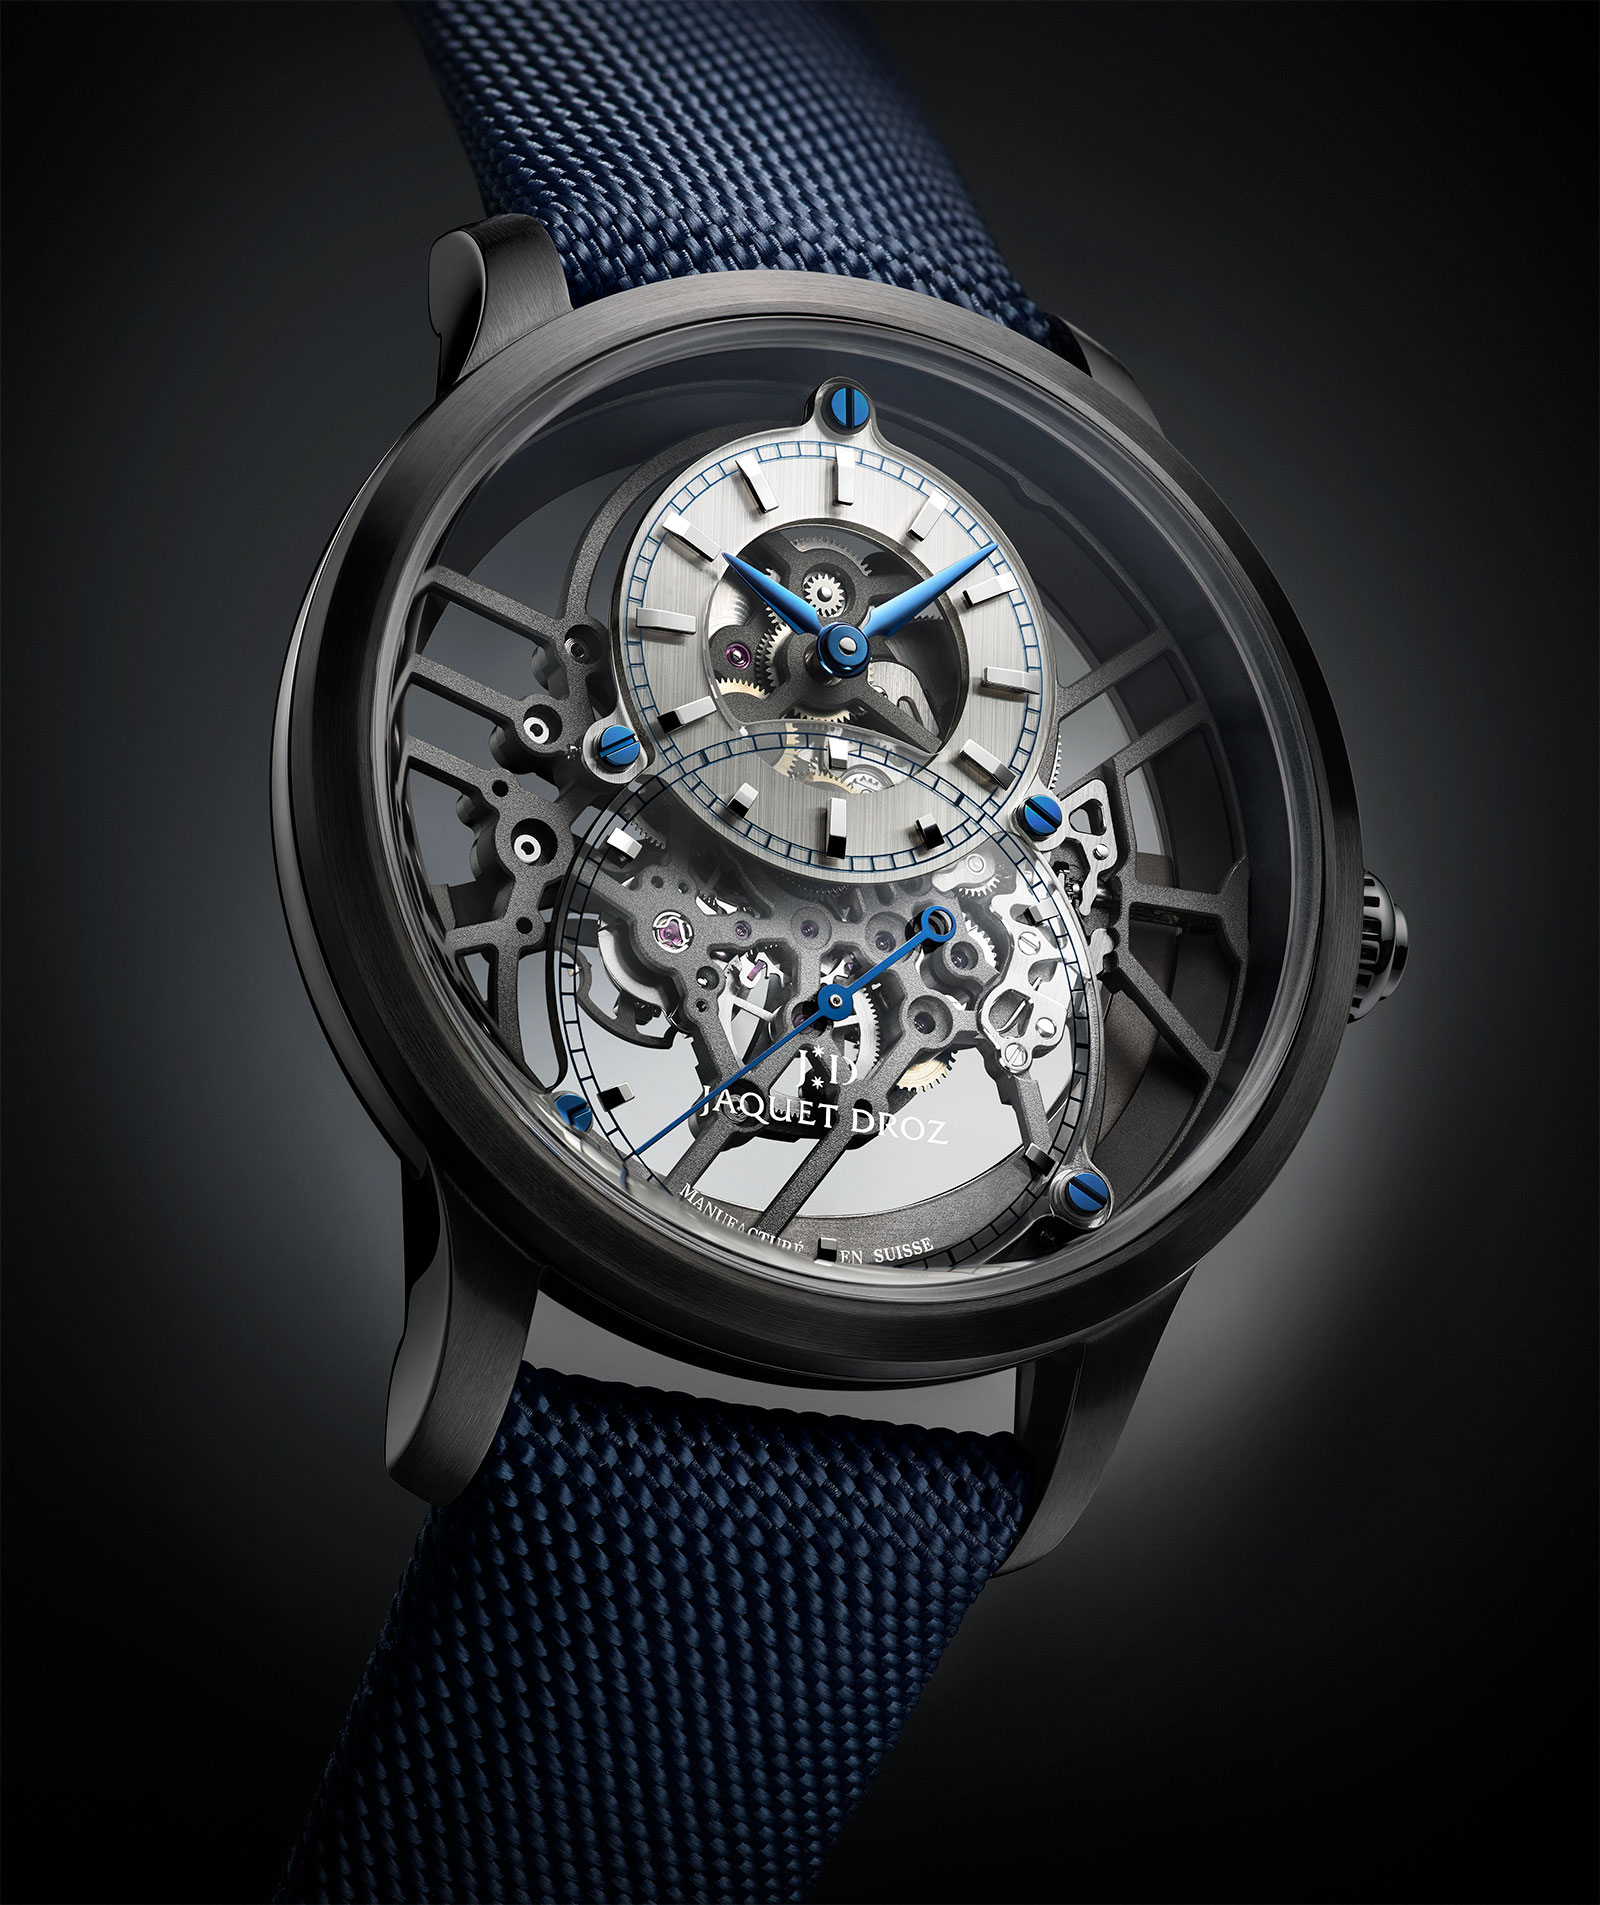 Jaquet Droz Grande Seconde Skelet-One Ceramic 2